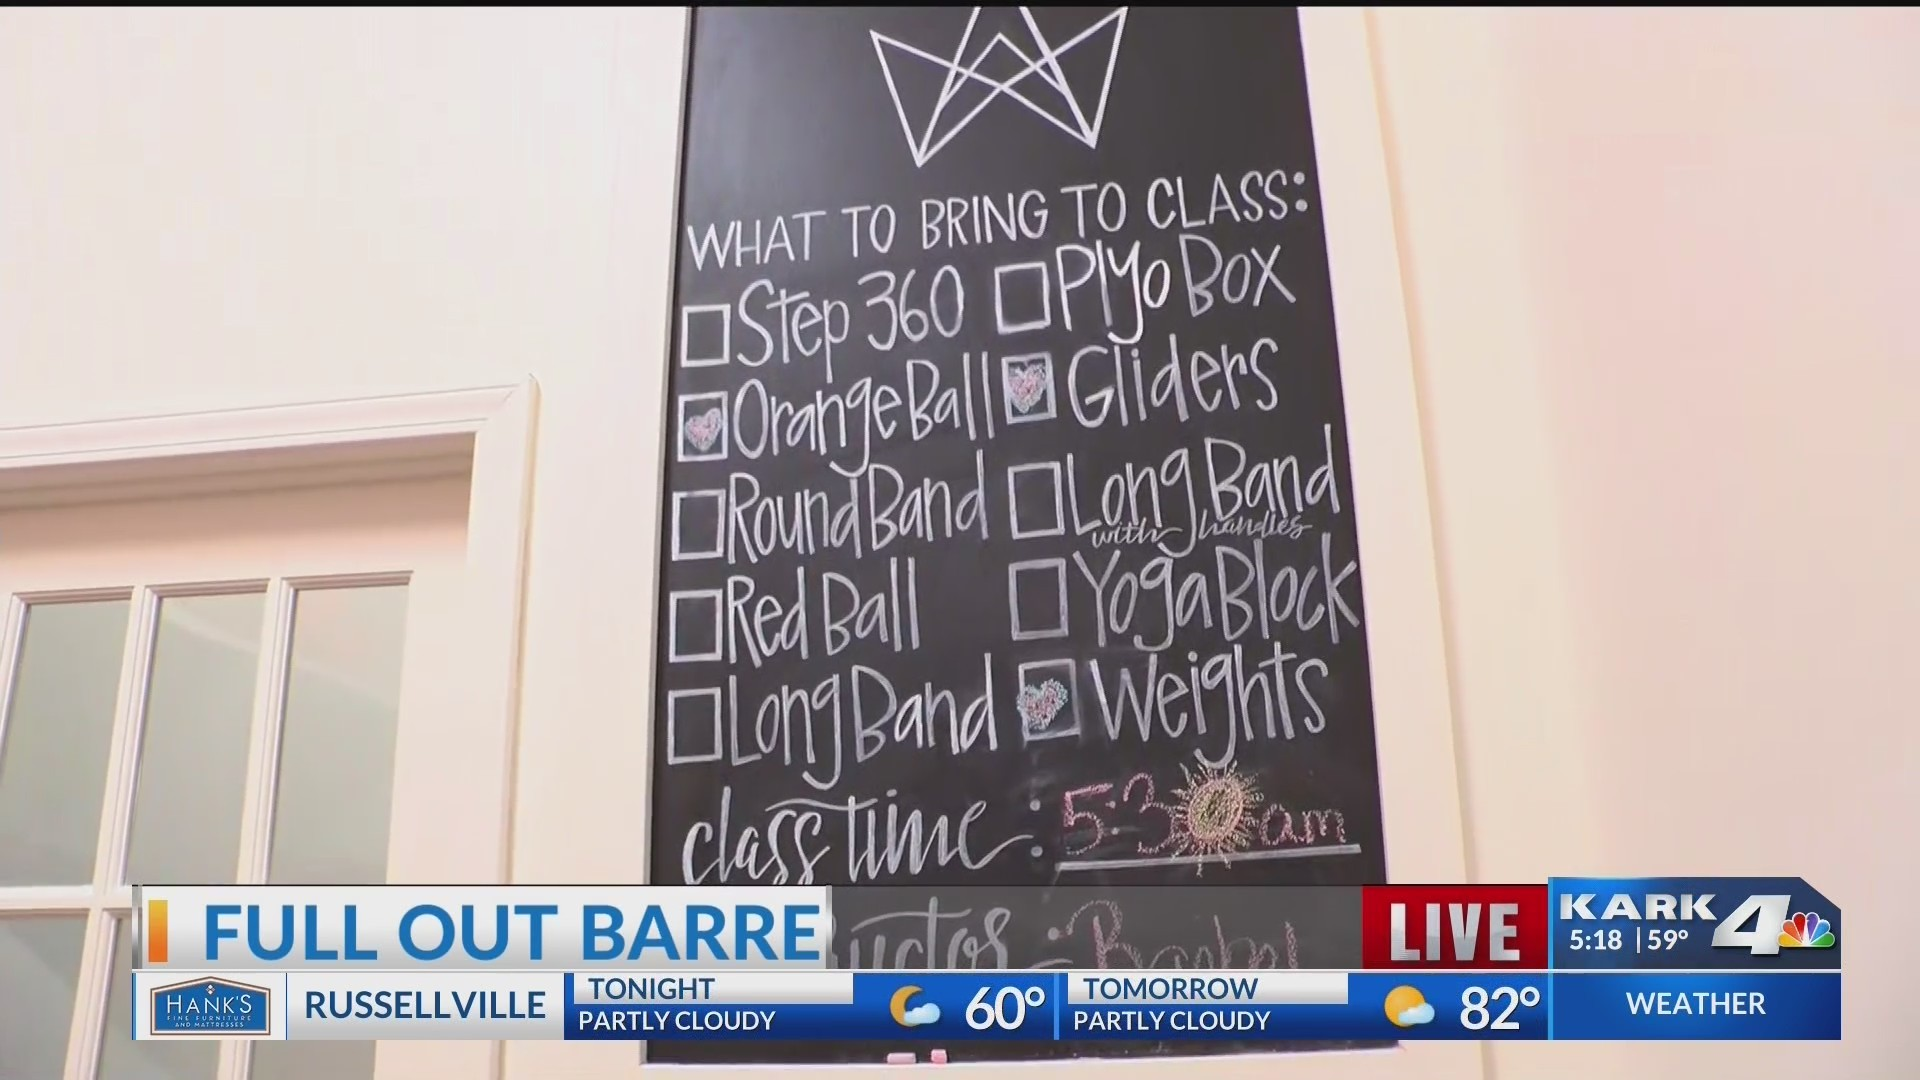 Full Out Barre Bryant